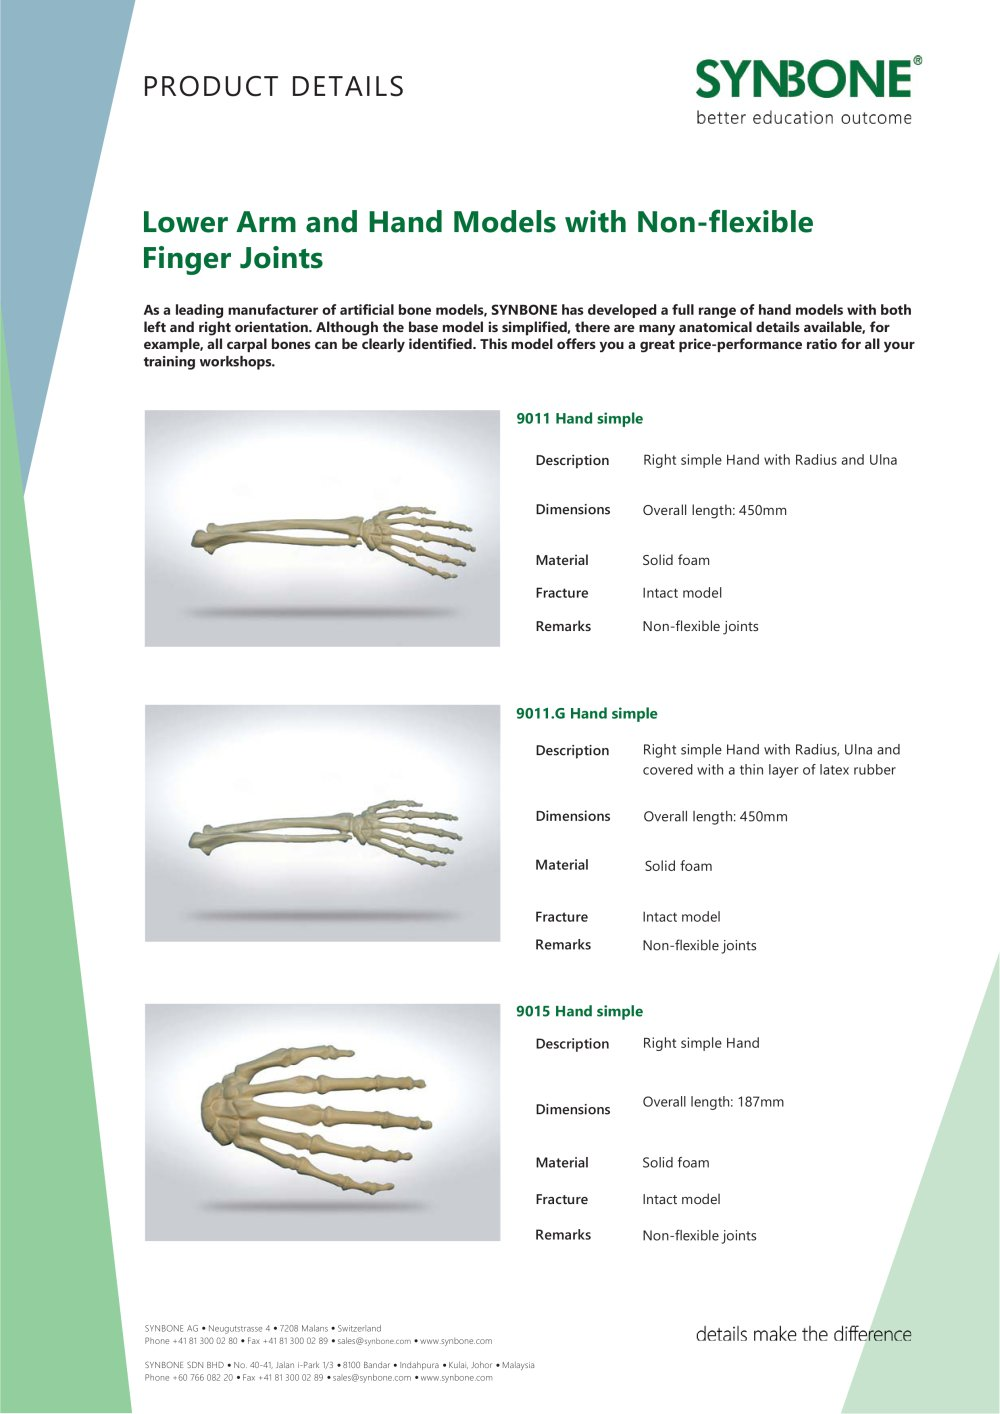 Lower Arm And Hand Models With Inflexible Finger Joints Synbone Ag